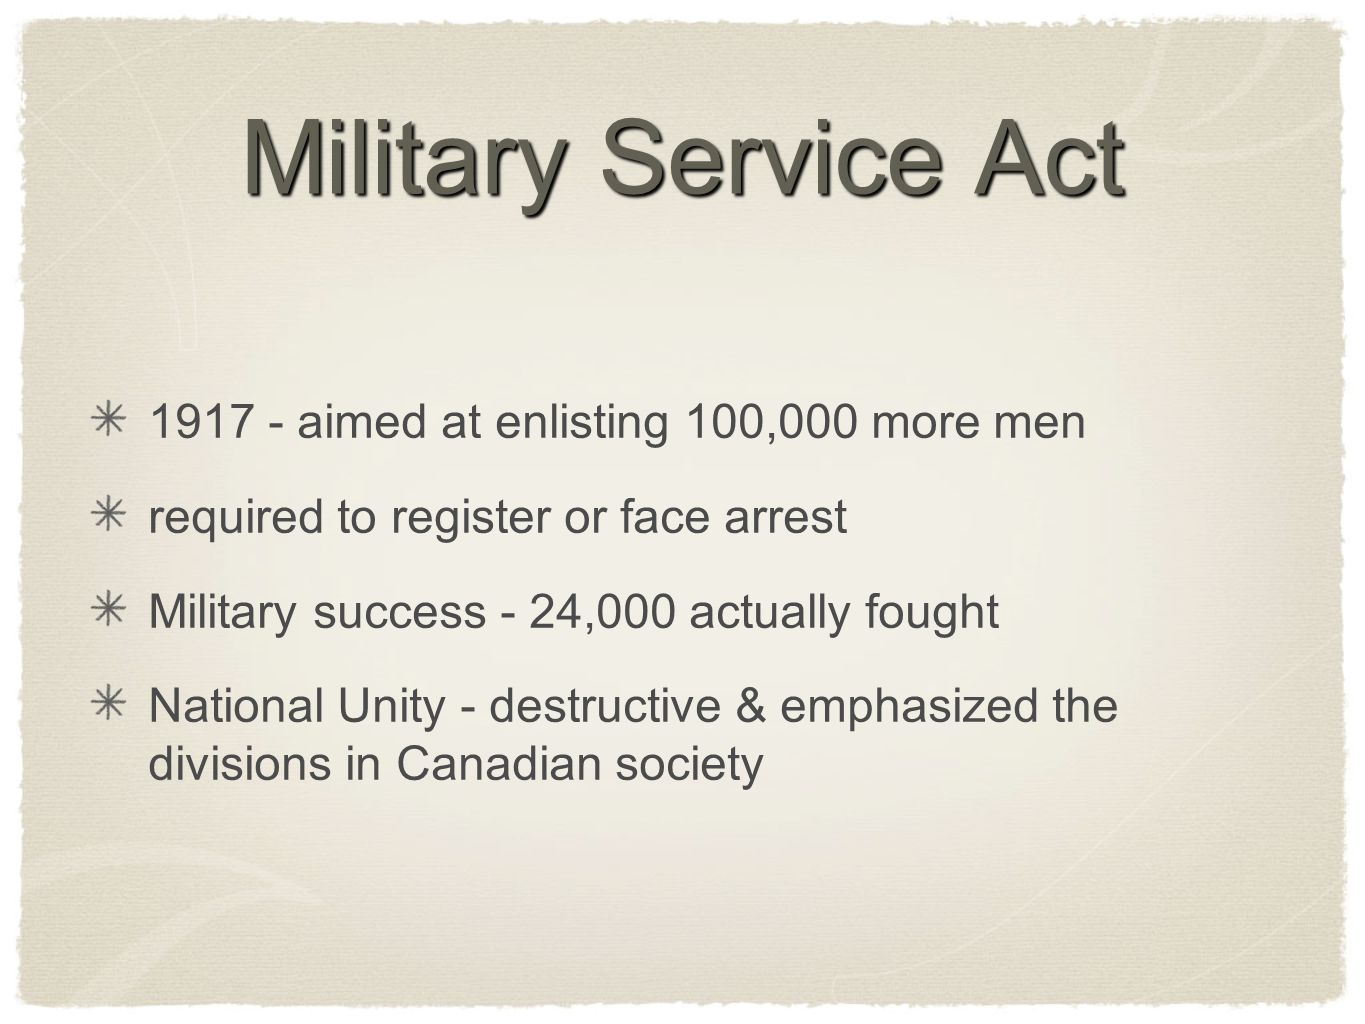 Military Service Act 1917 - aimed at enlisting 100,000 more men